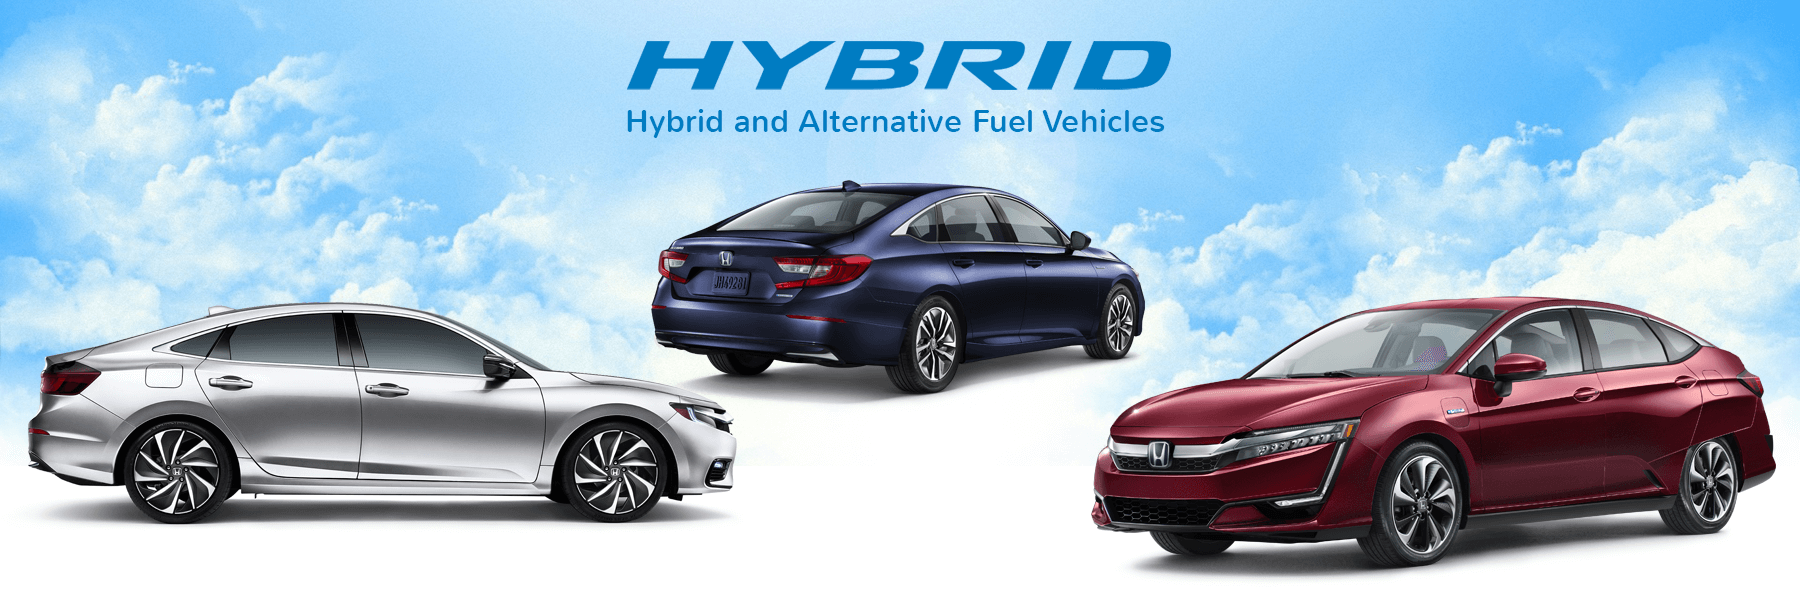 Honda Hybrid And Alternative Fuel Vehicles ...